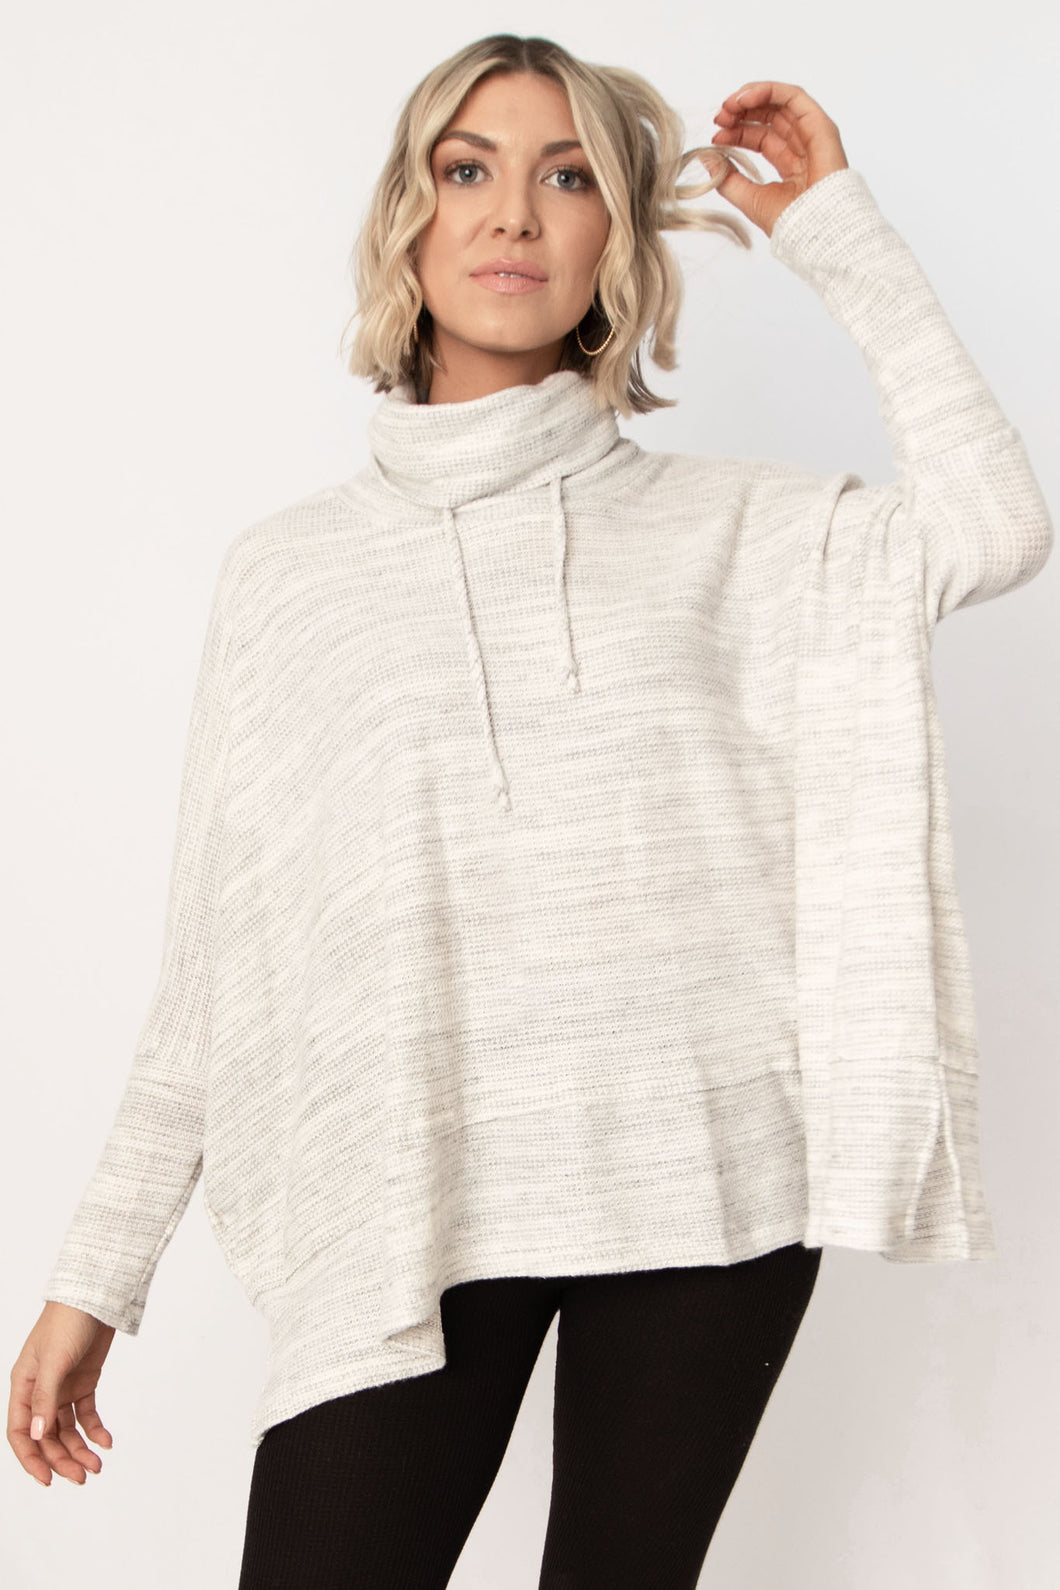 Telluride Brushed Marbled Knit Drawstring Neck Top - Heather Grey